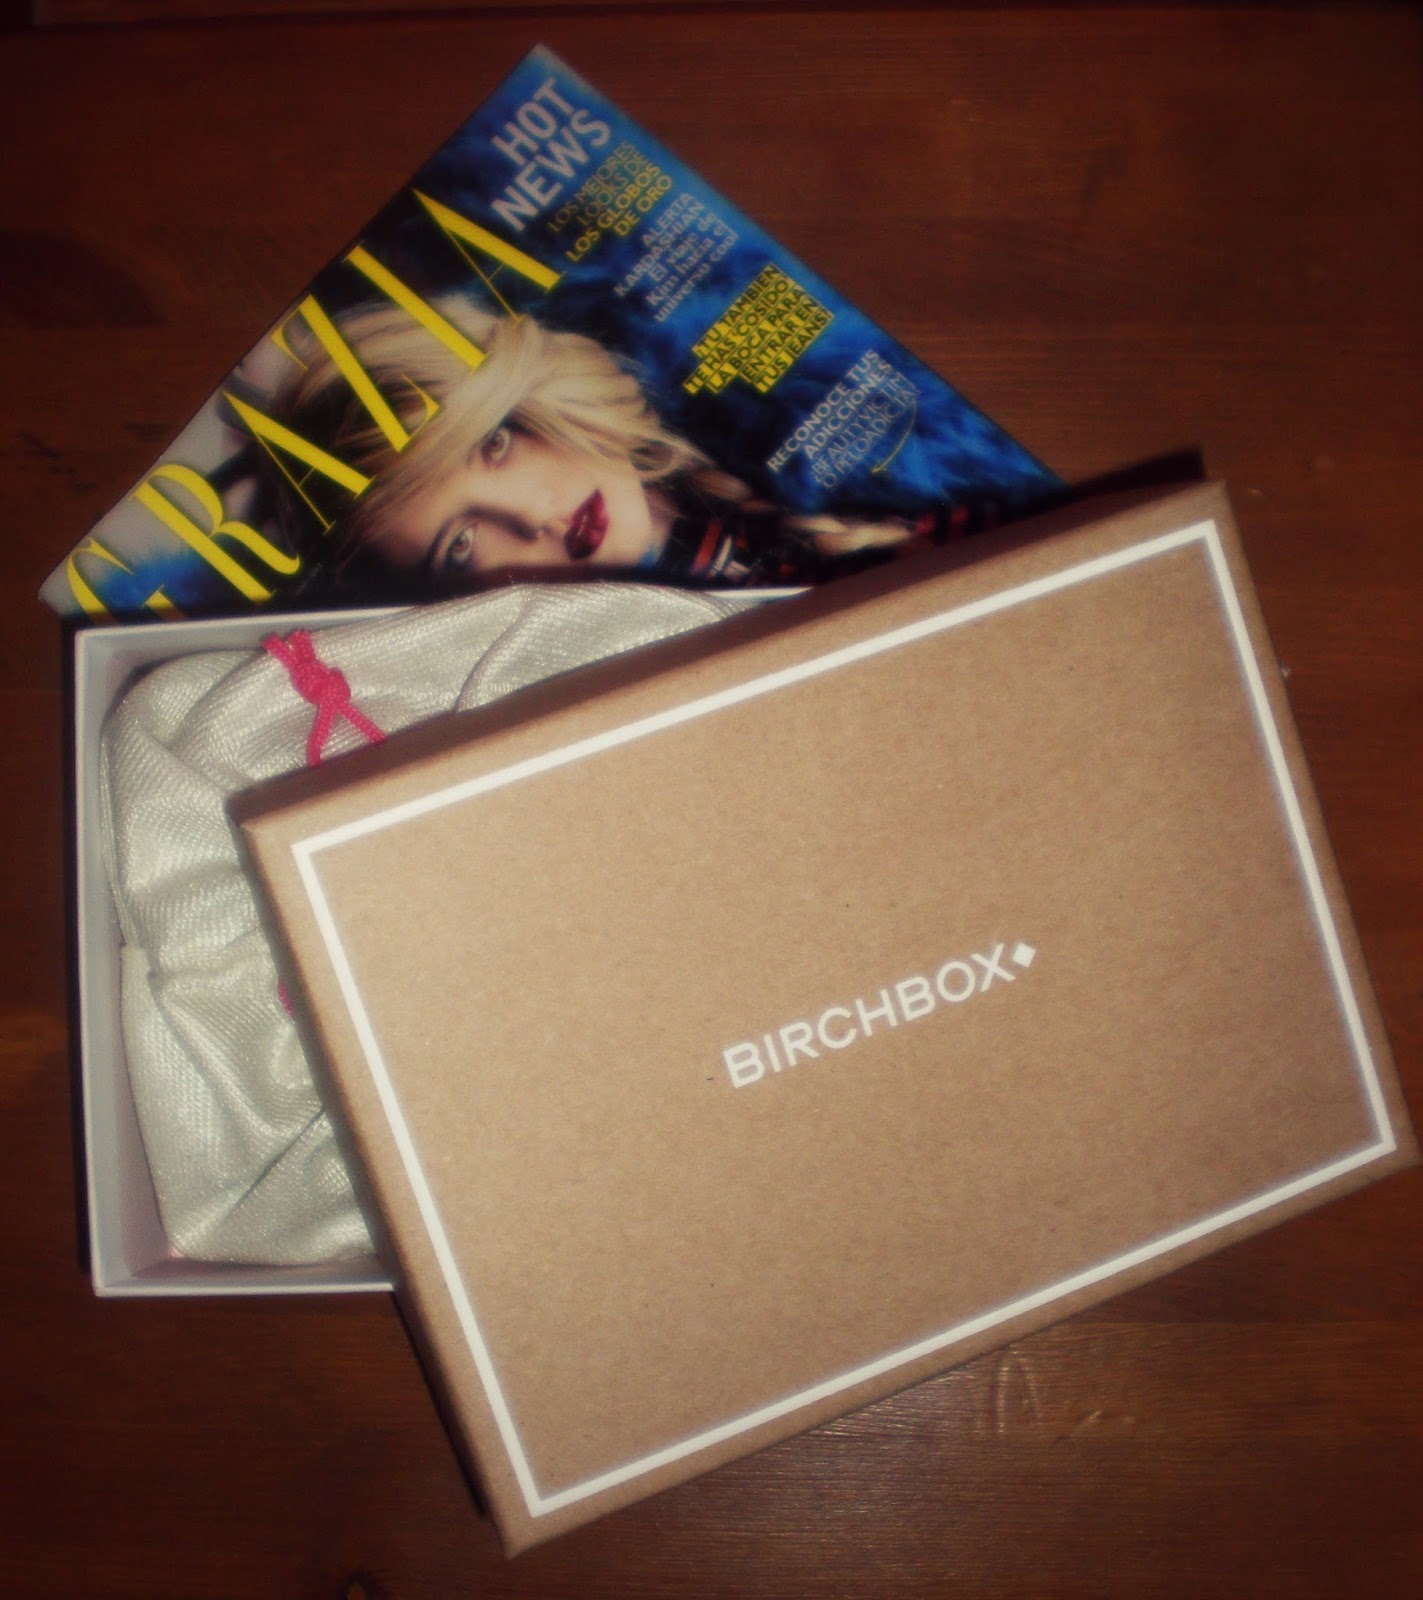 Birchbox Enero 2014 | This is the Year!